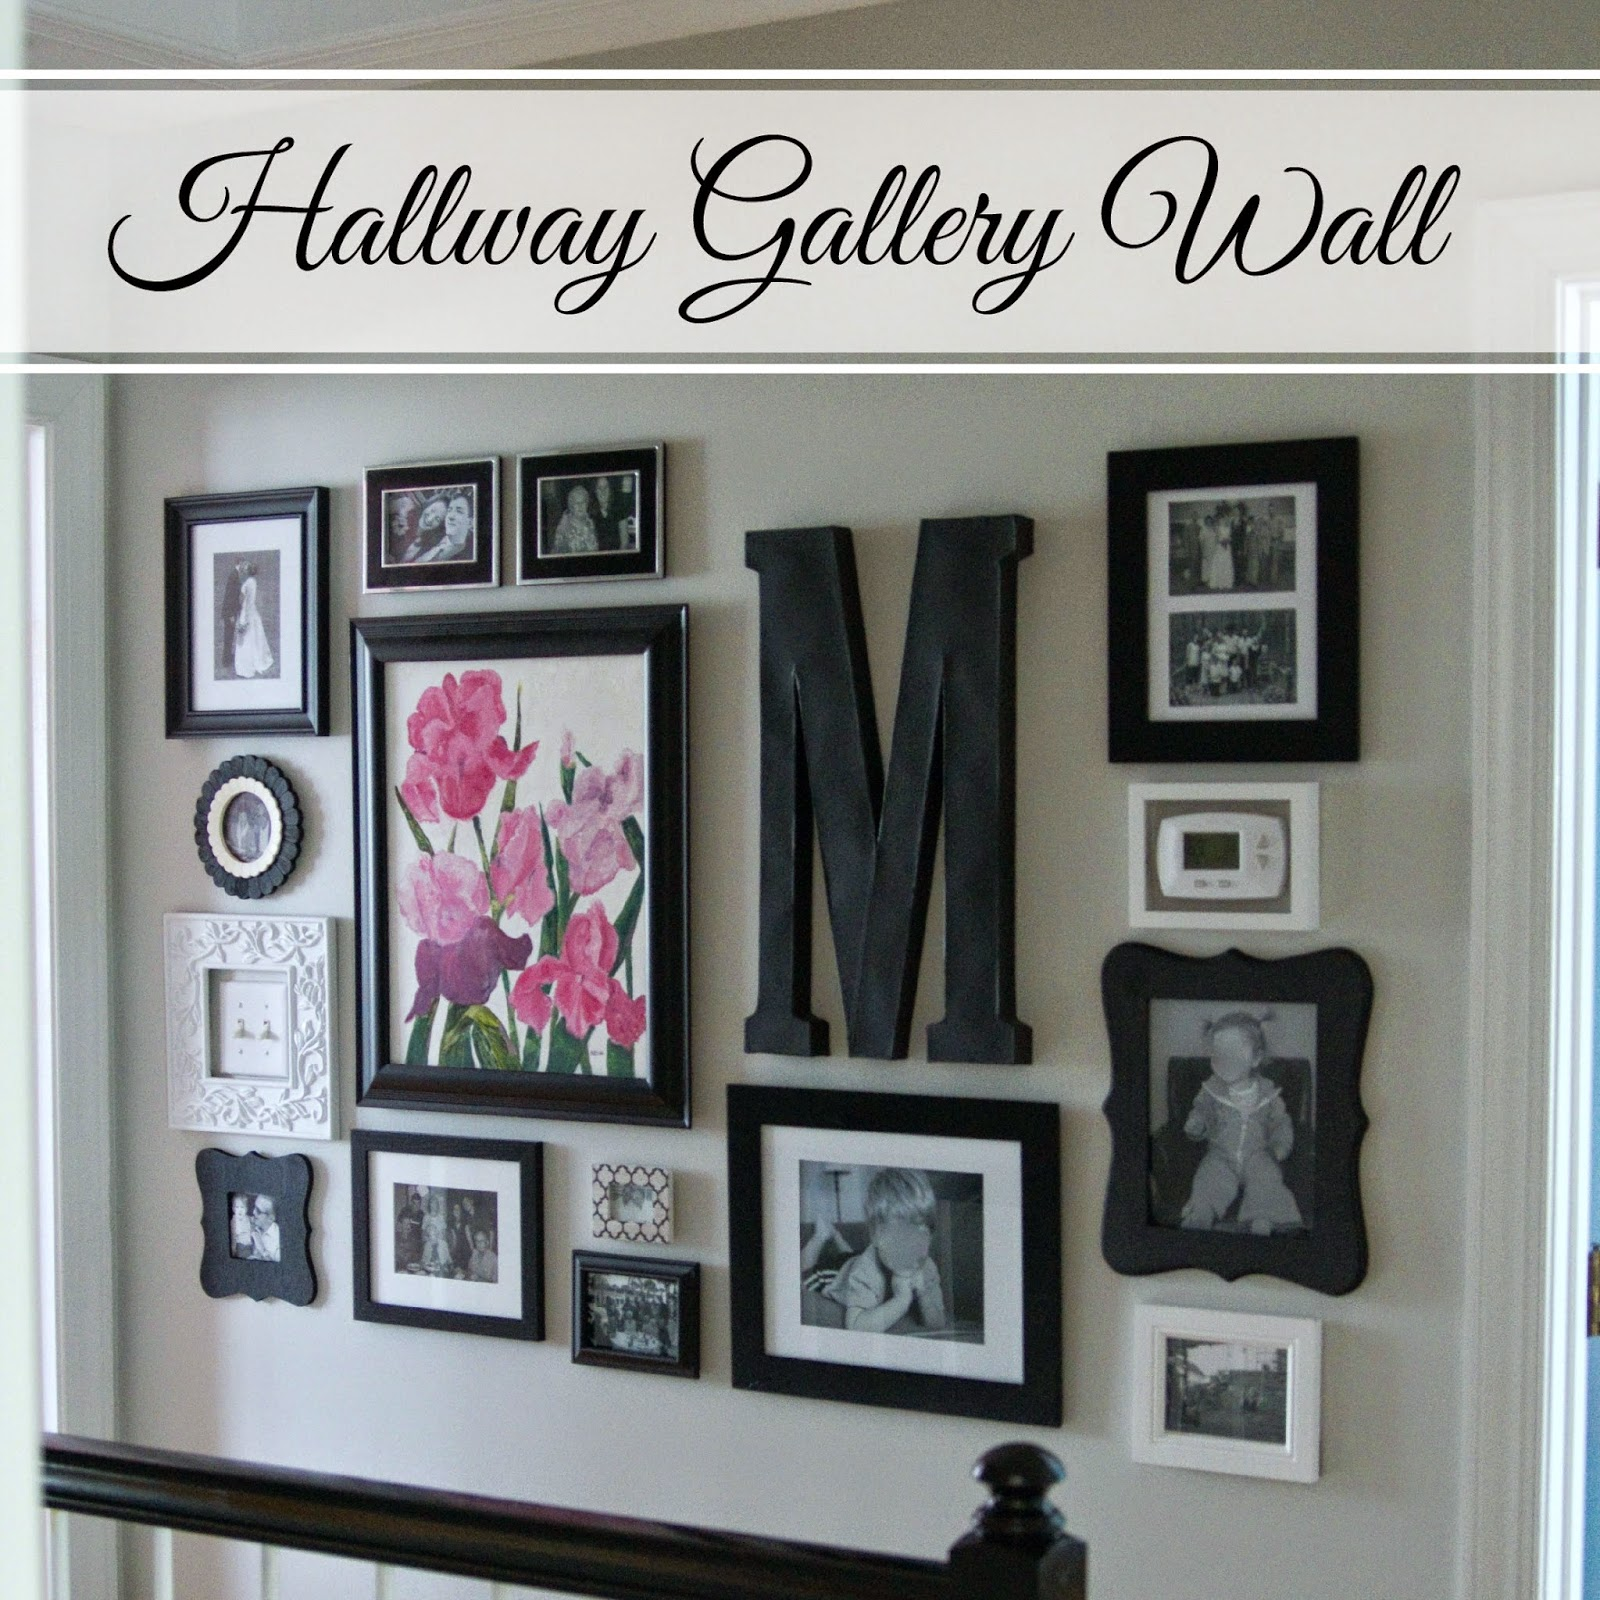 Use pictures frames to distract from light switches and other wall controls.